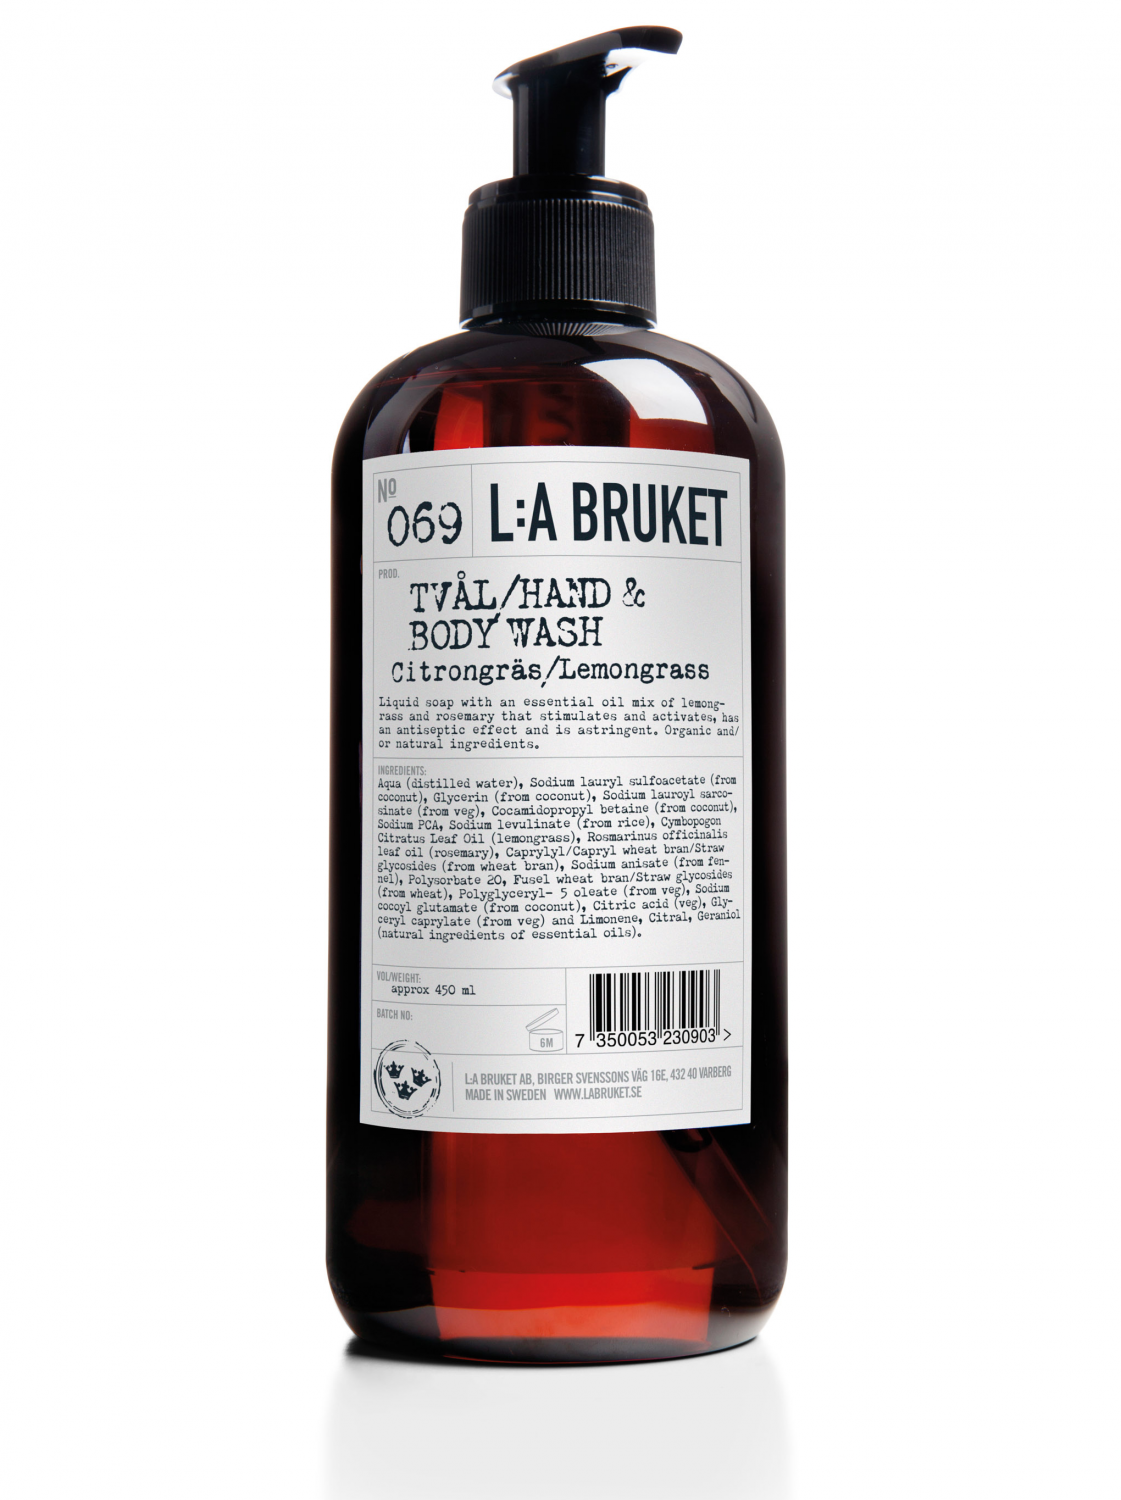 Liquid soap/body wash in a brown bottle with pump with scent of lemongrass, containing 450 ml.